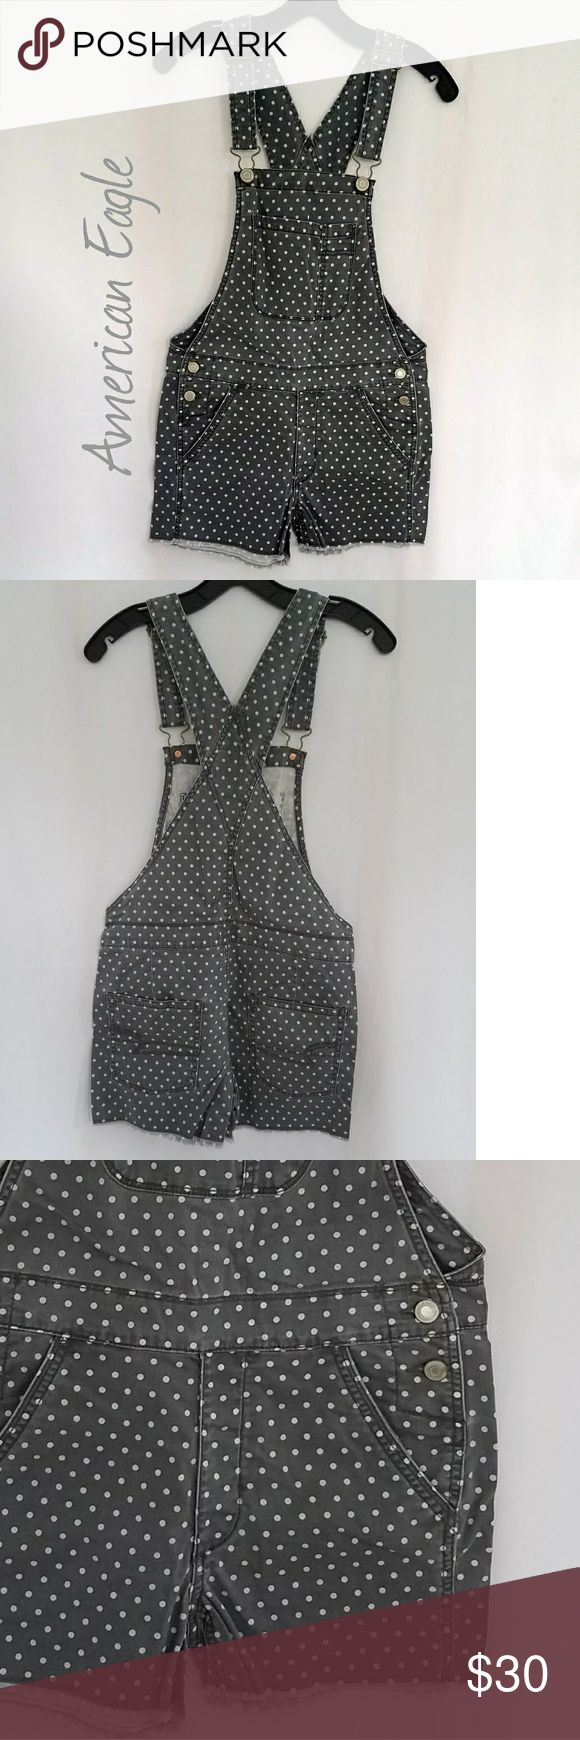 🎈AE Polka•Dot Jean Overalls NWOT. XXS. Grey jean with a lighter grey/green polkadot.    PLEASE feel free to submit an offer or add to a bundle for a discount! Please view photos, description and measurements. Please ask questions prior to purchasing. Mannequin is 2/4 for size reference. Please accept your order promptly when it arrives! I DO NOT TRADE. American Eagle Outfitters Jeans Overalls